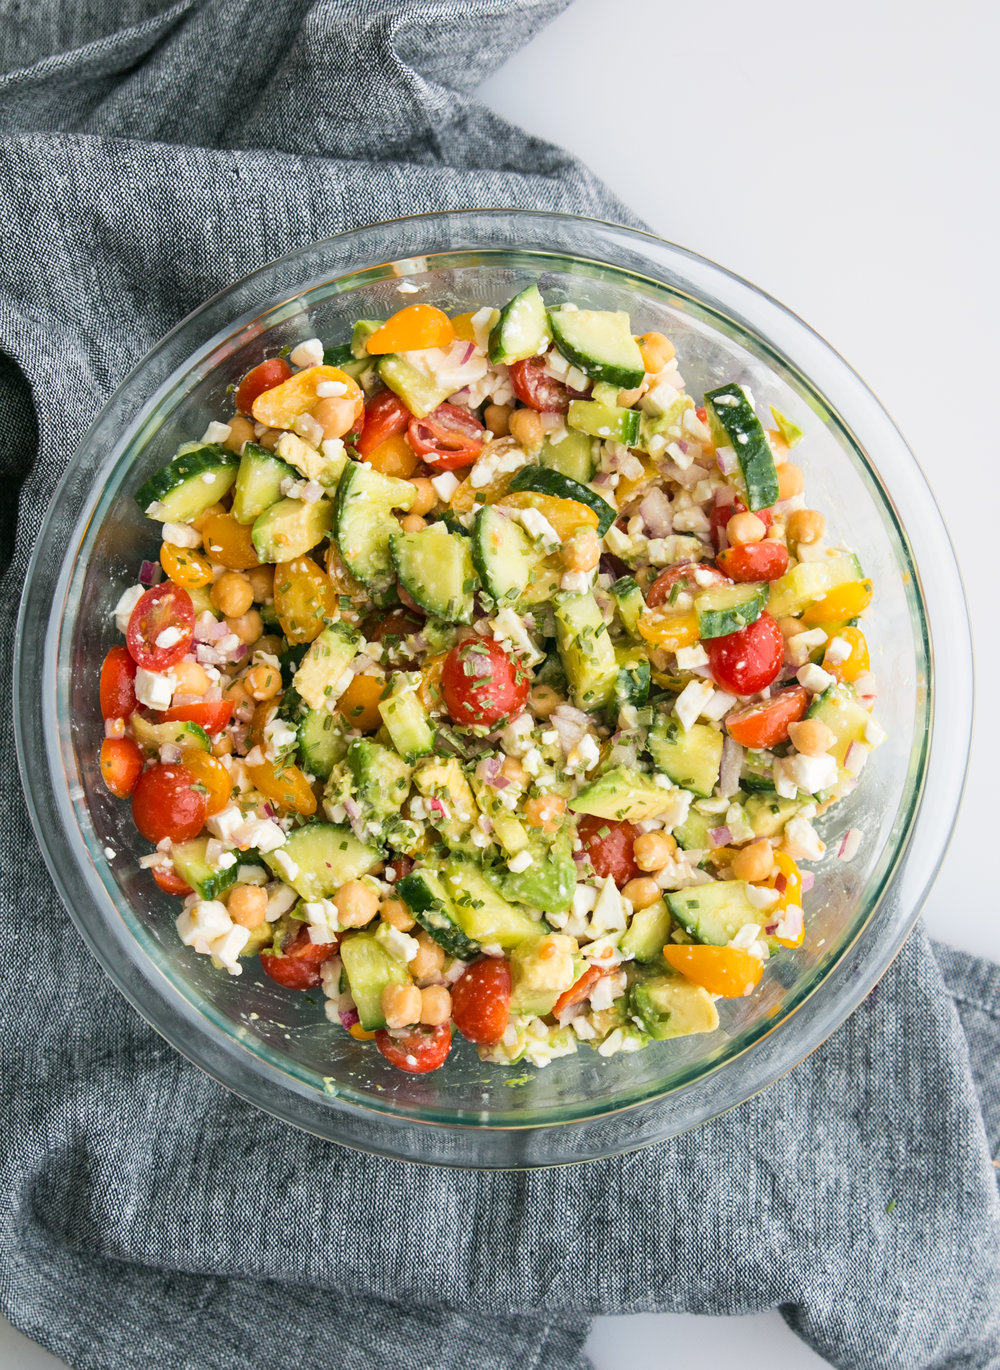 Chickpea salad with feta cheese and avocado ecipe.jpg